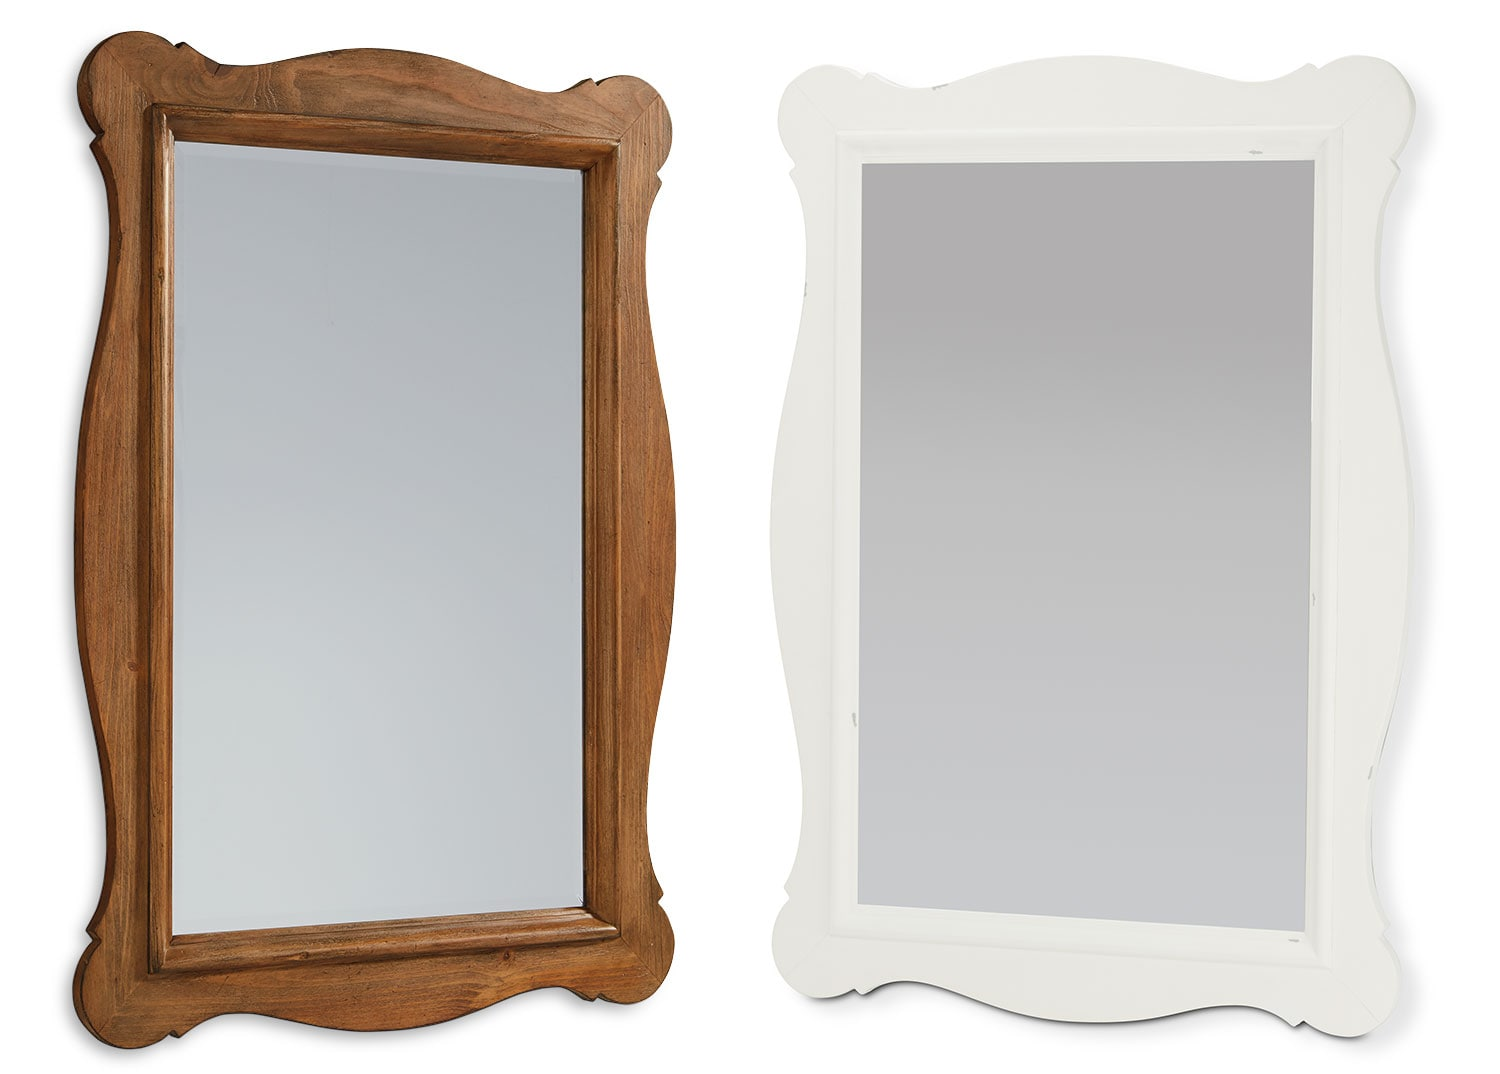 The Farmhouse Curve Mirror Collection